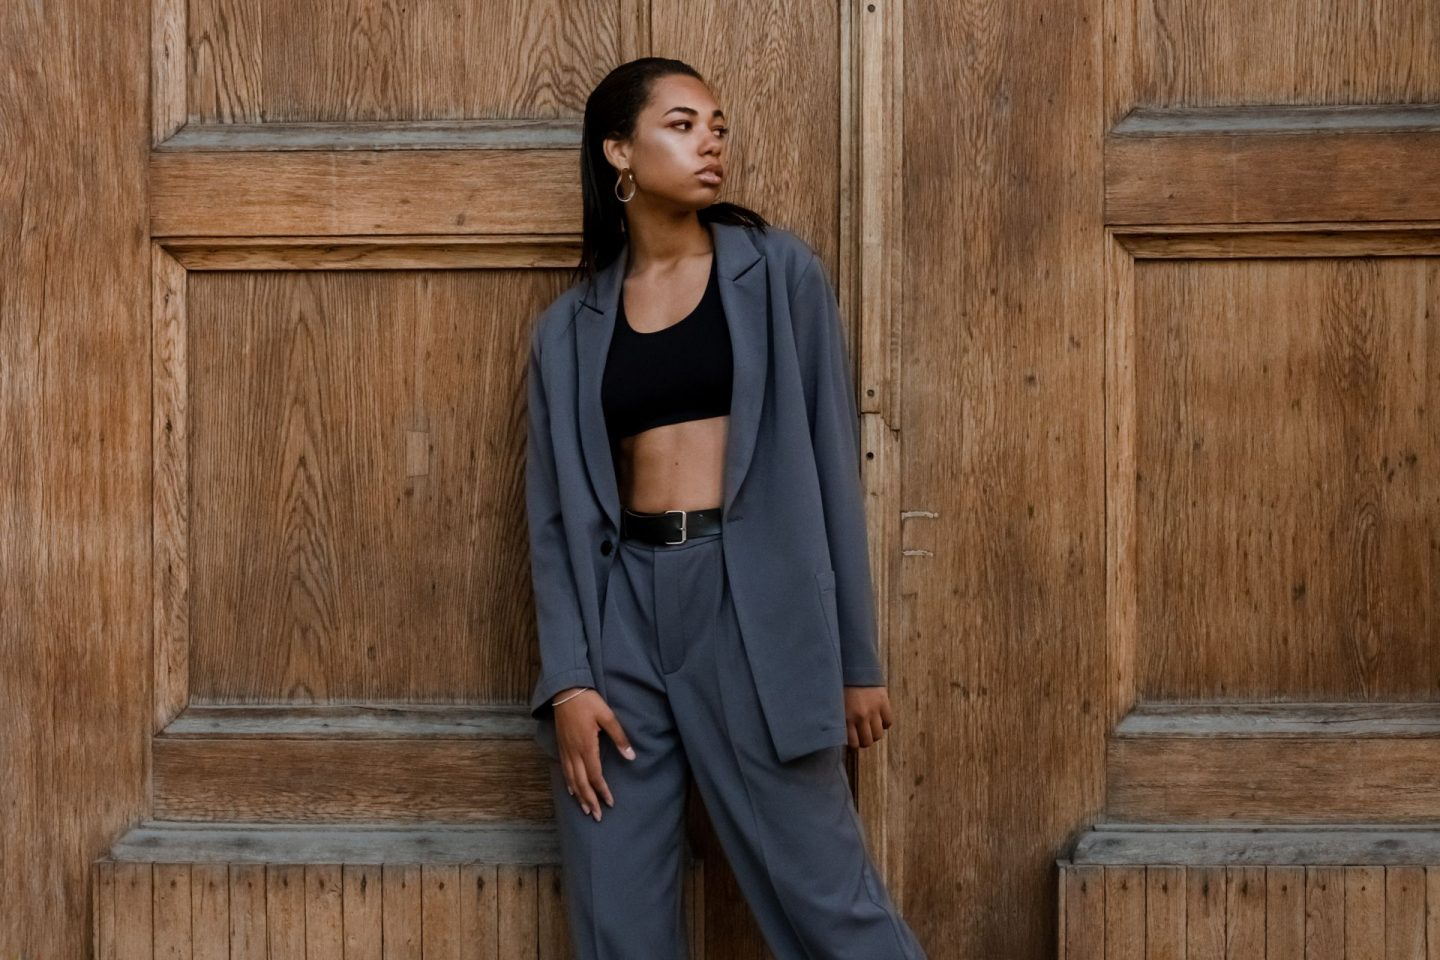 AW21 Trends Suiting